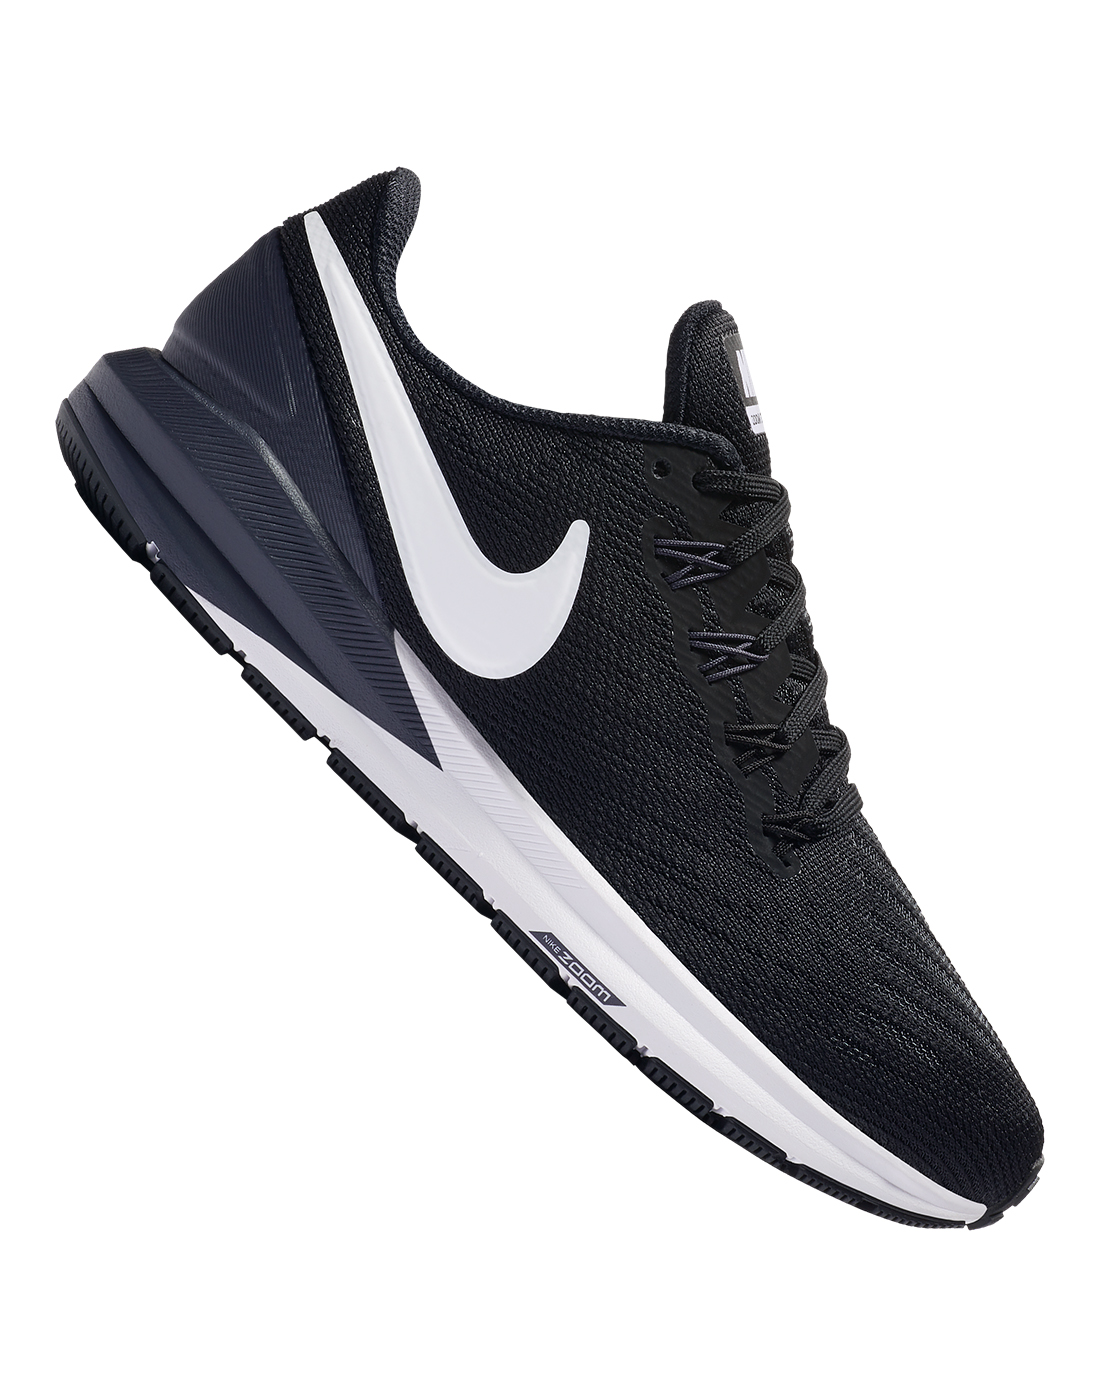 89922c28179f6 Nike Womens Air Zoom Structure 22 | Life Style Sports